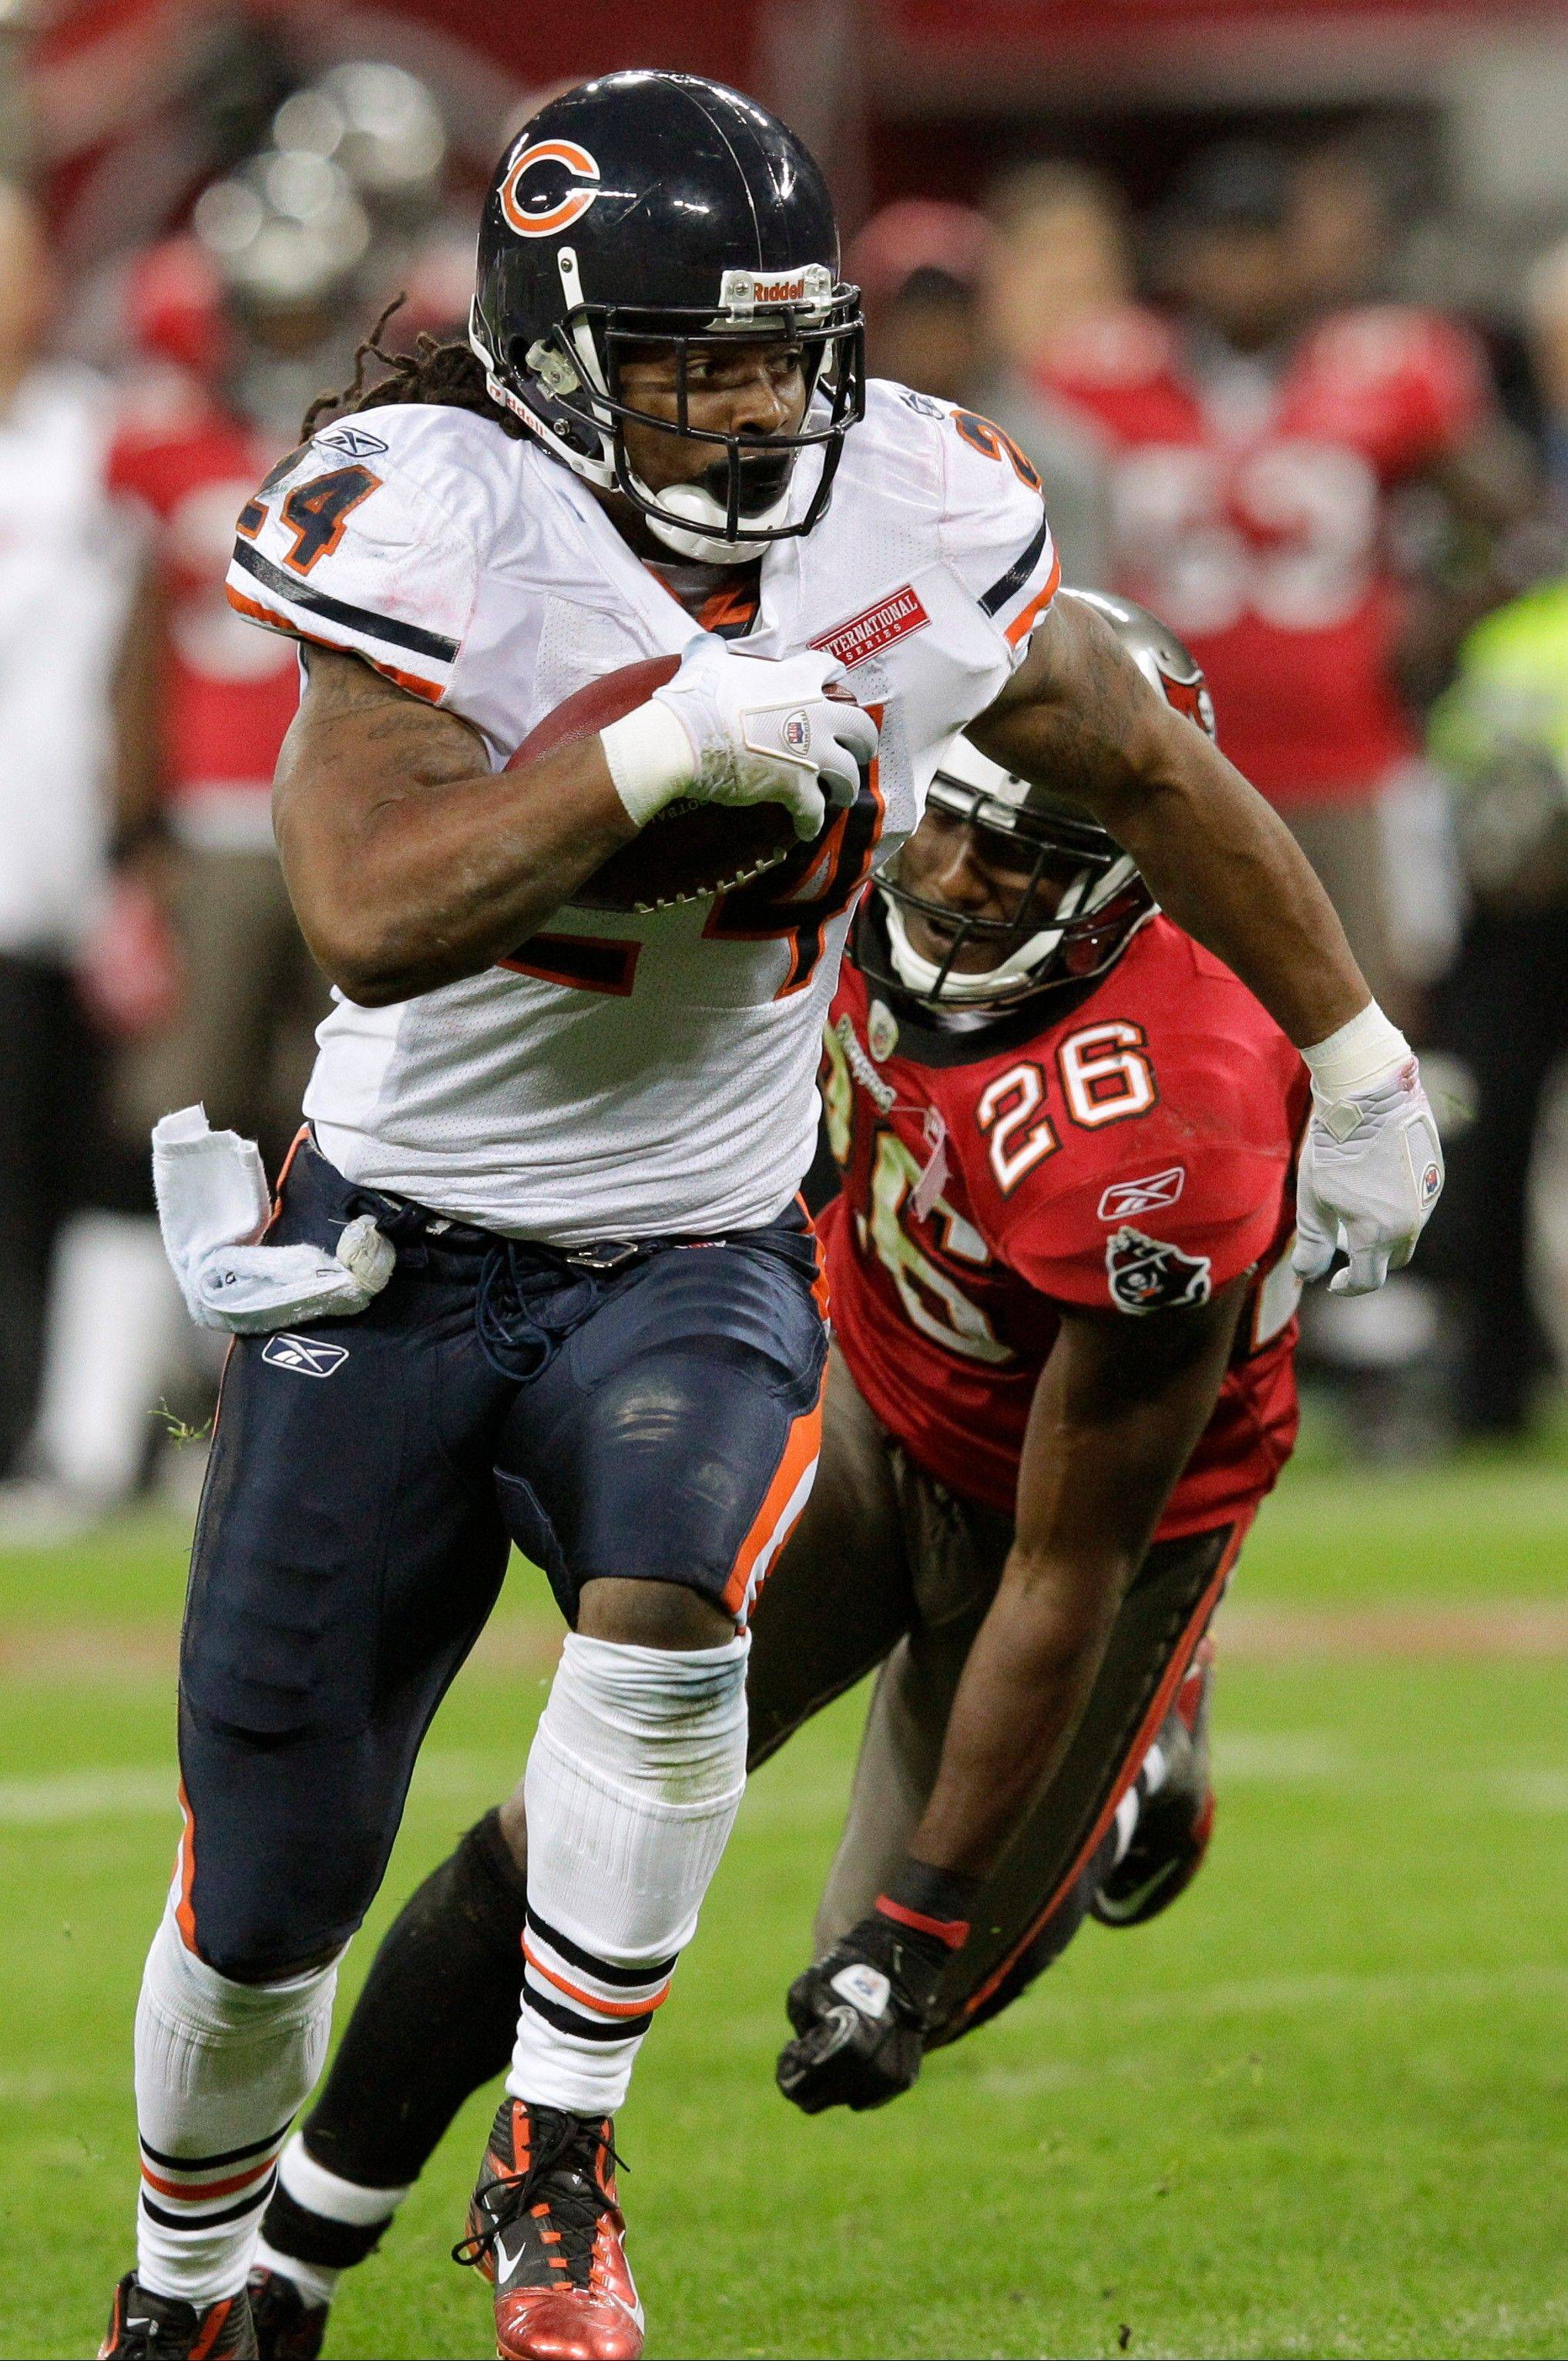 Chicago Bears running back Marion Barber breaks away from Tampa Bay Buccaneers safety Sean Jones to score a 12-yard touchdown during the second half.